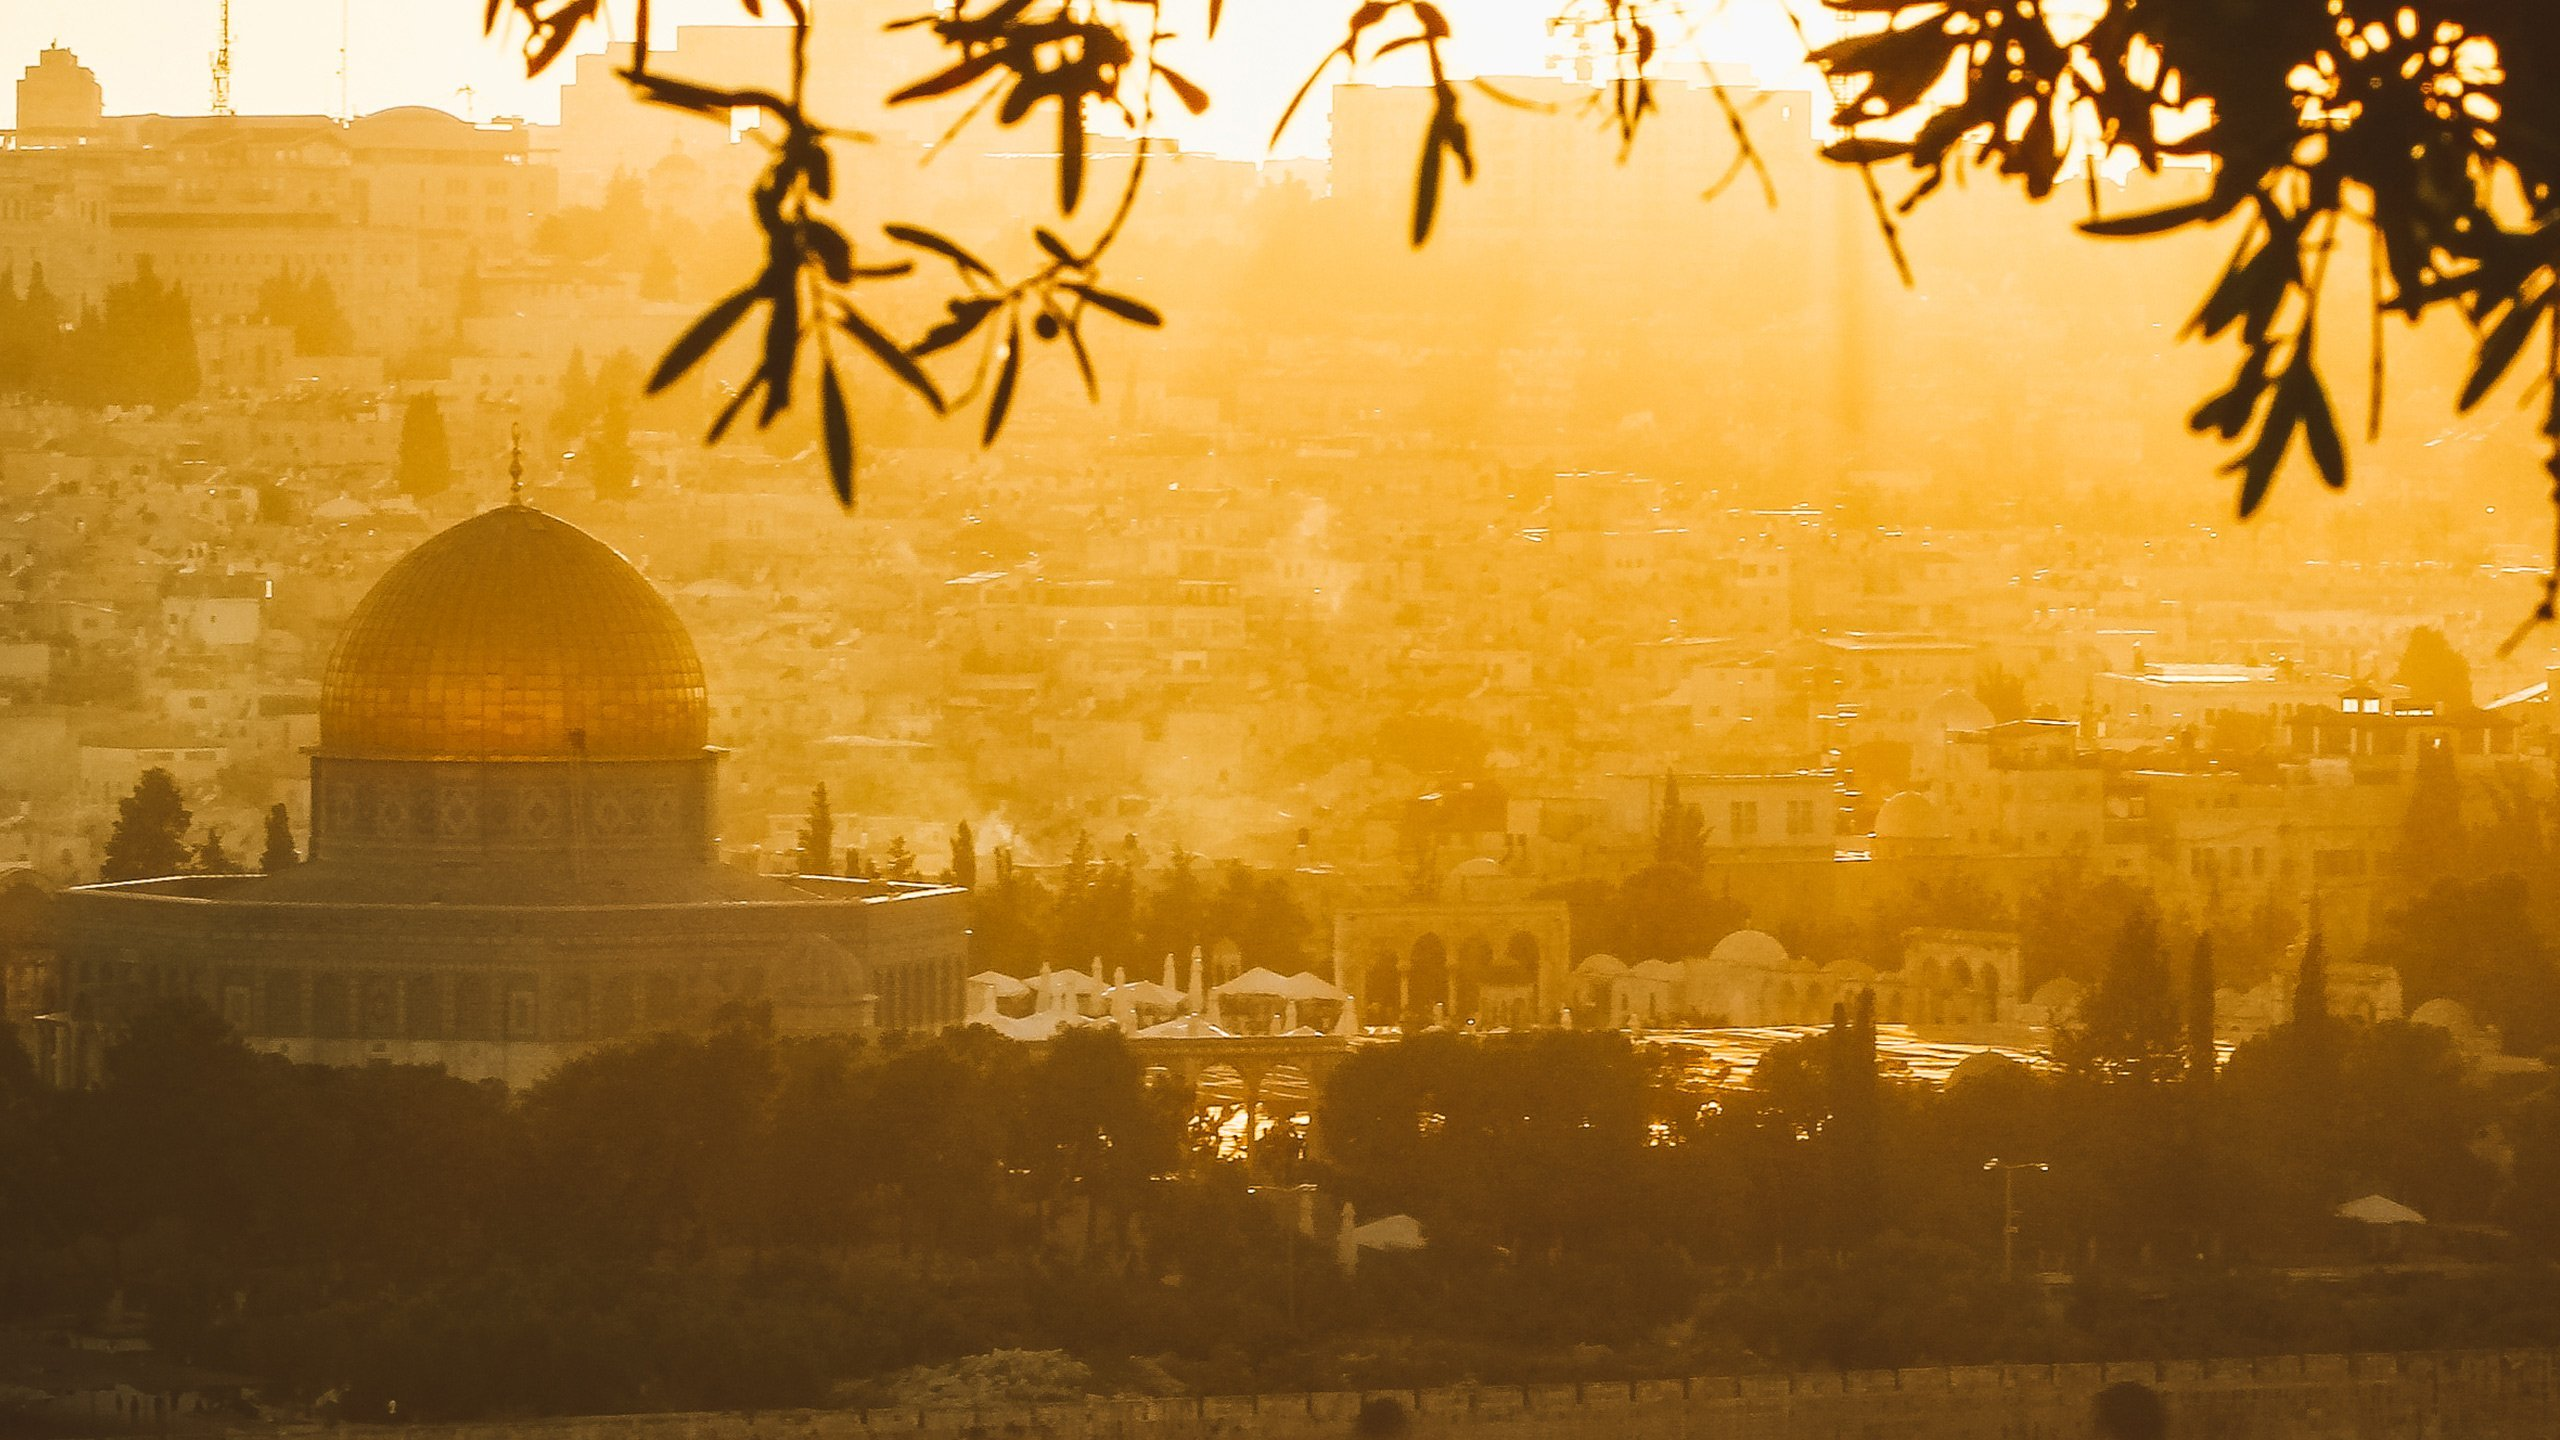 The Palestinian Struggle Through the Prophetic Lens